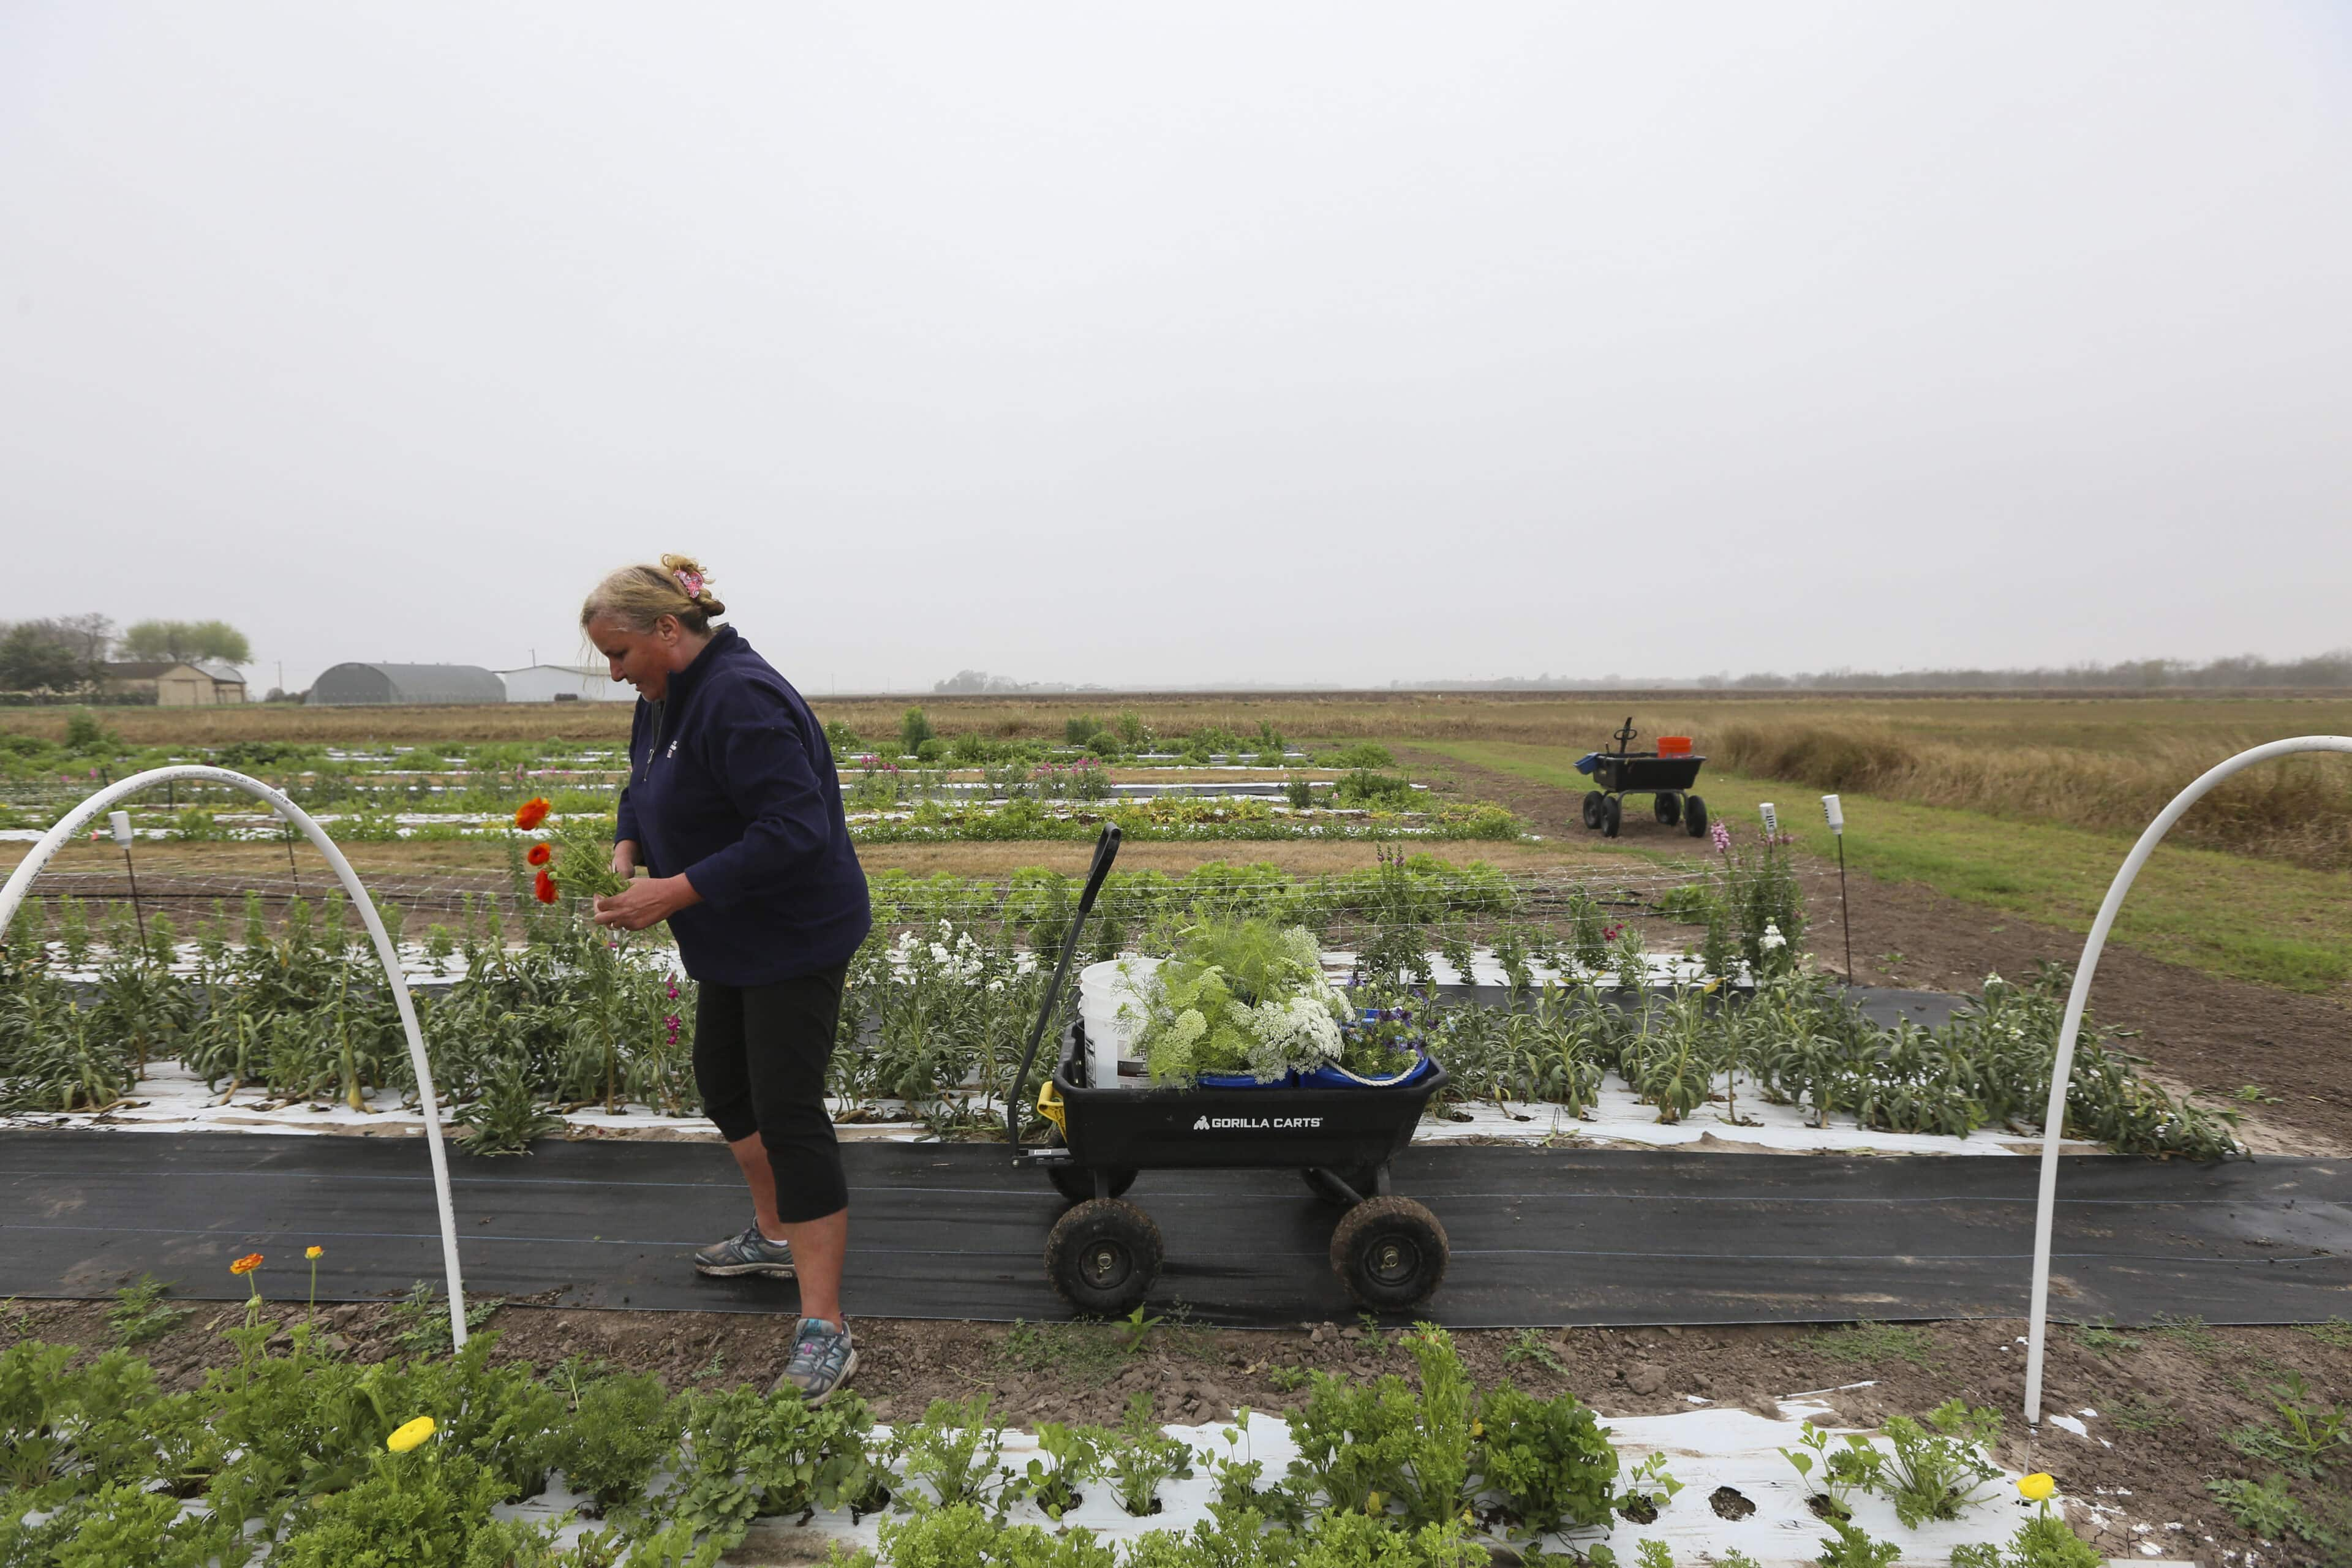 Mother Nature's sting: Flower farm hurt by deep freeze | MyRGV.com